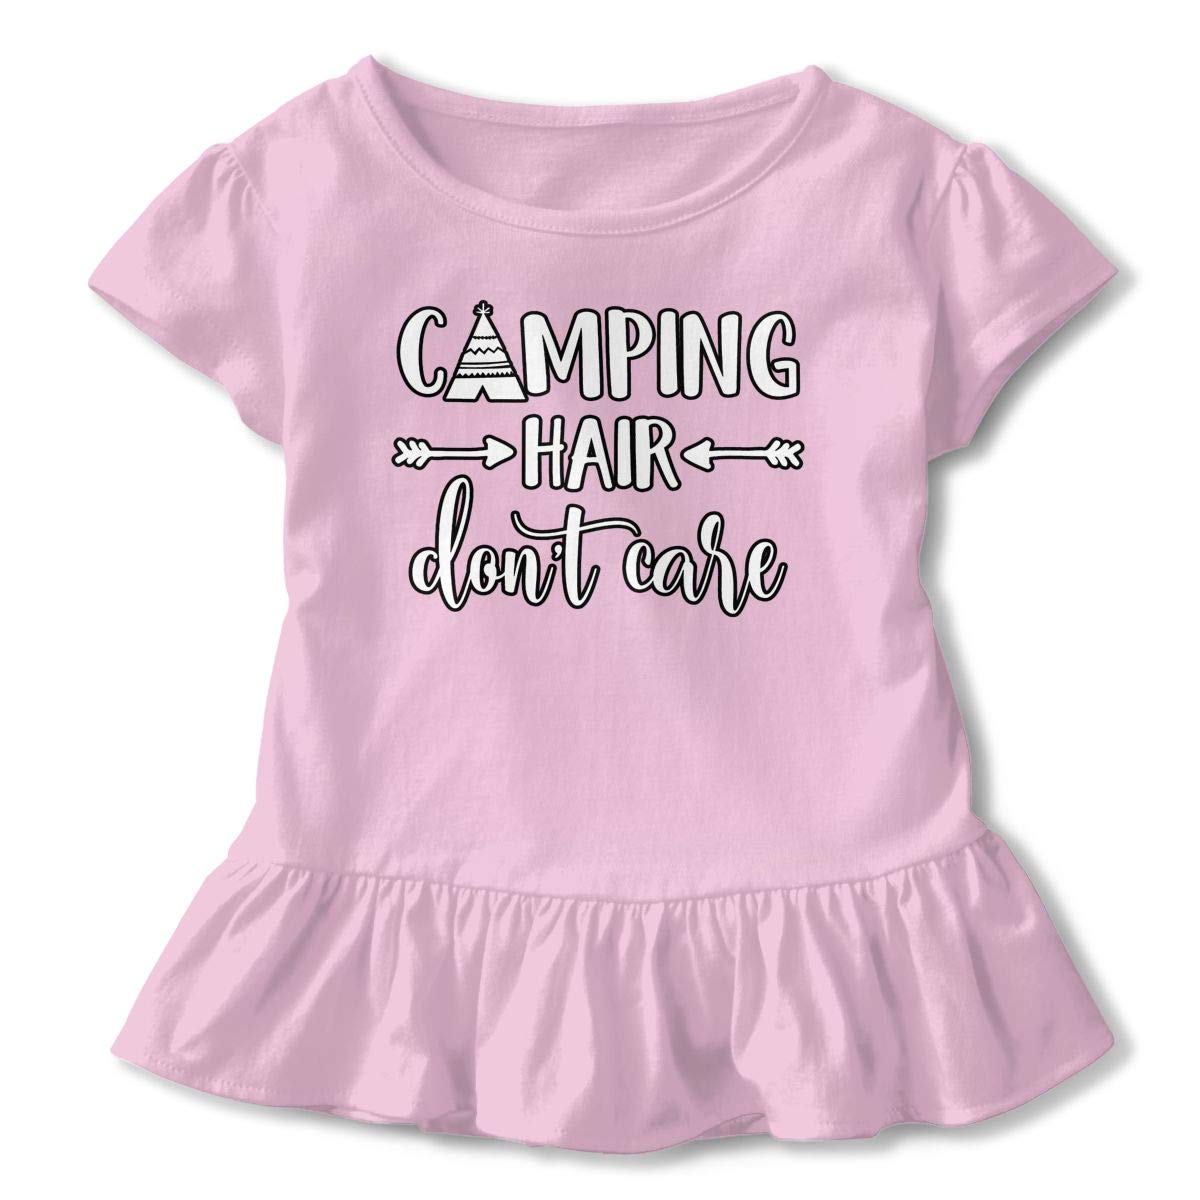 Camping Hair Dont Care Toddler Baby Girls Cotton Ruffle Short Sleeve Top Comfortable T-Shirt 2-6T